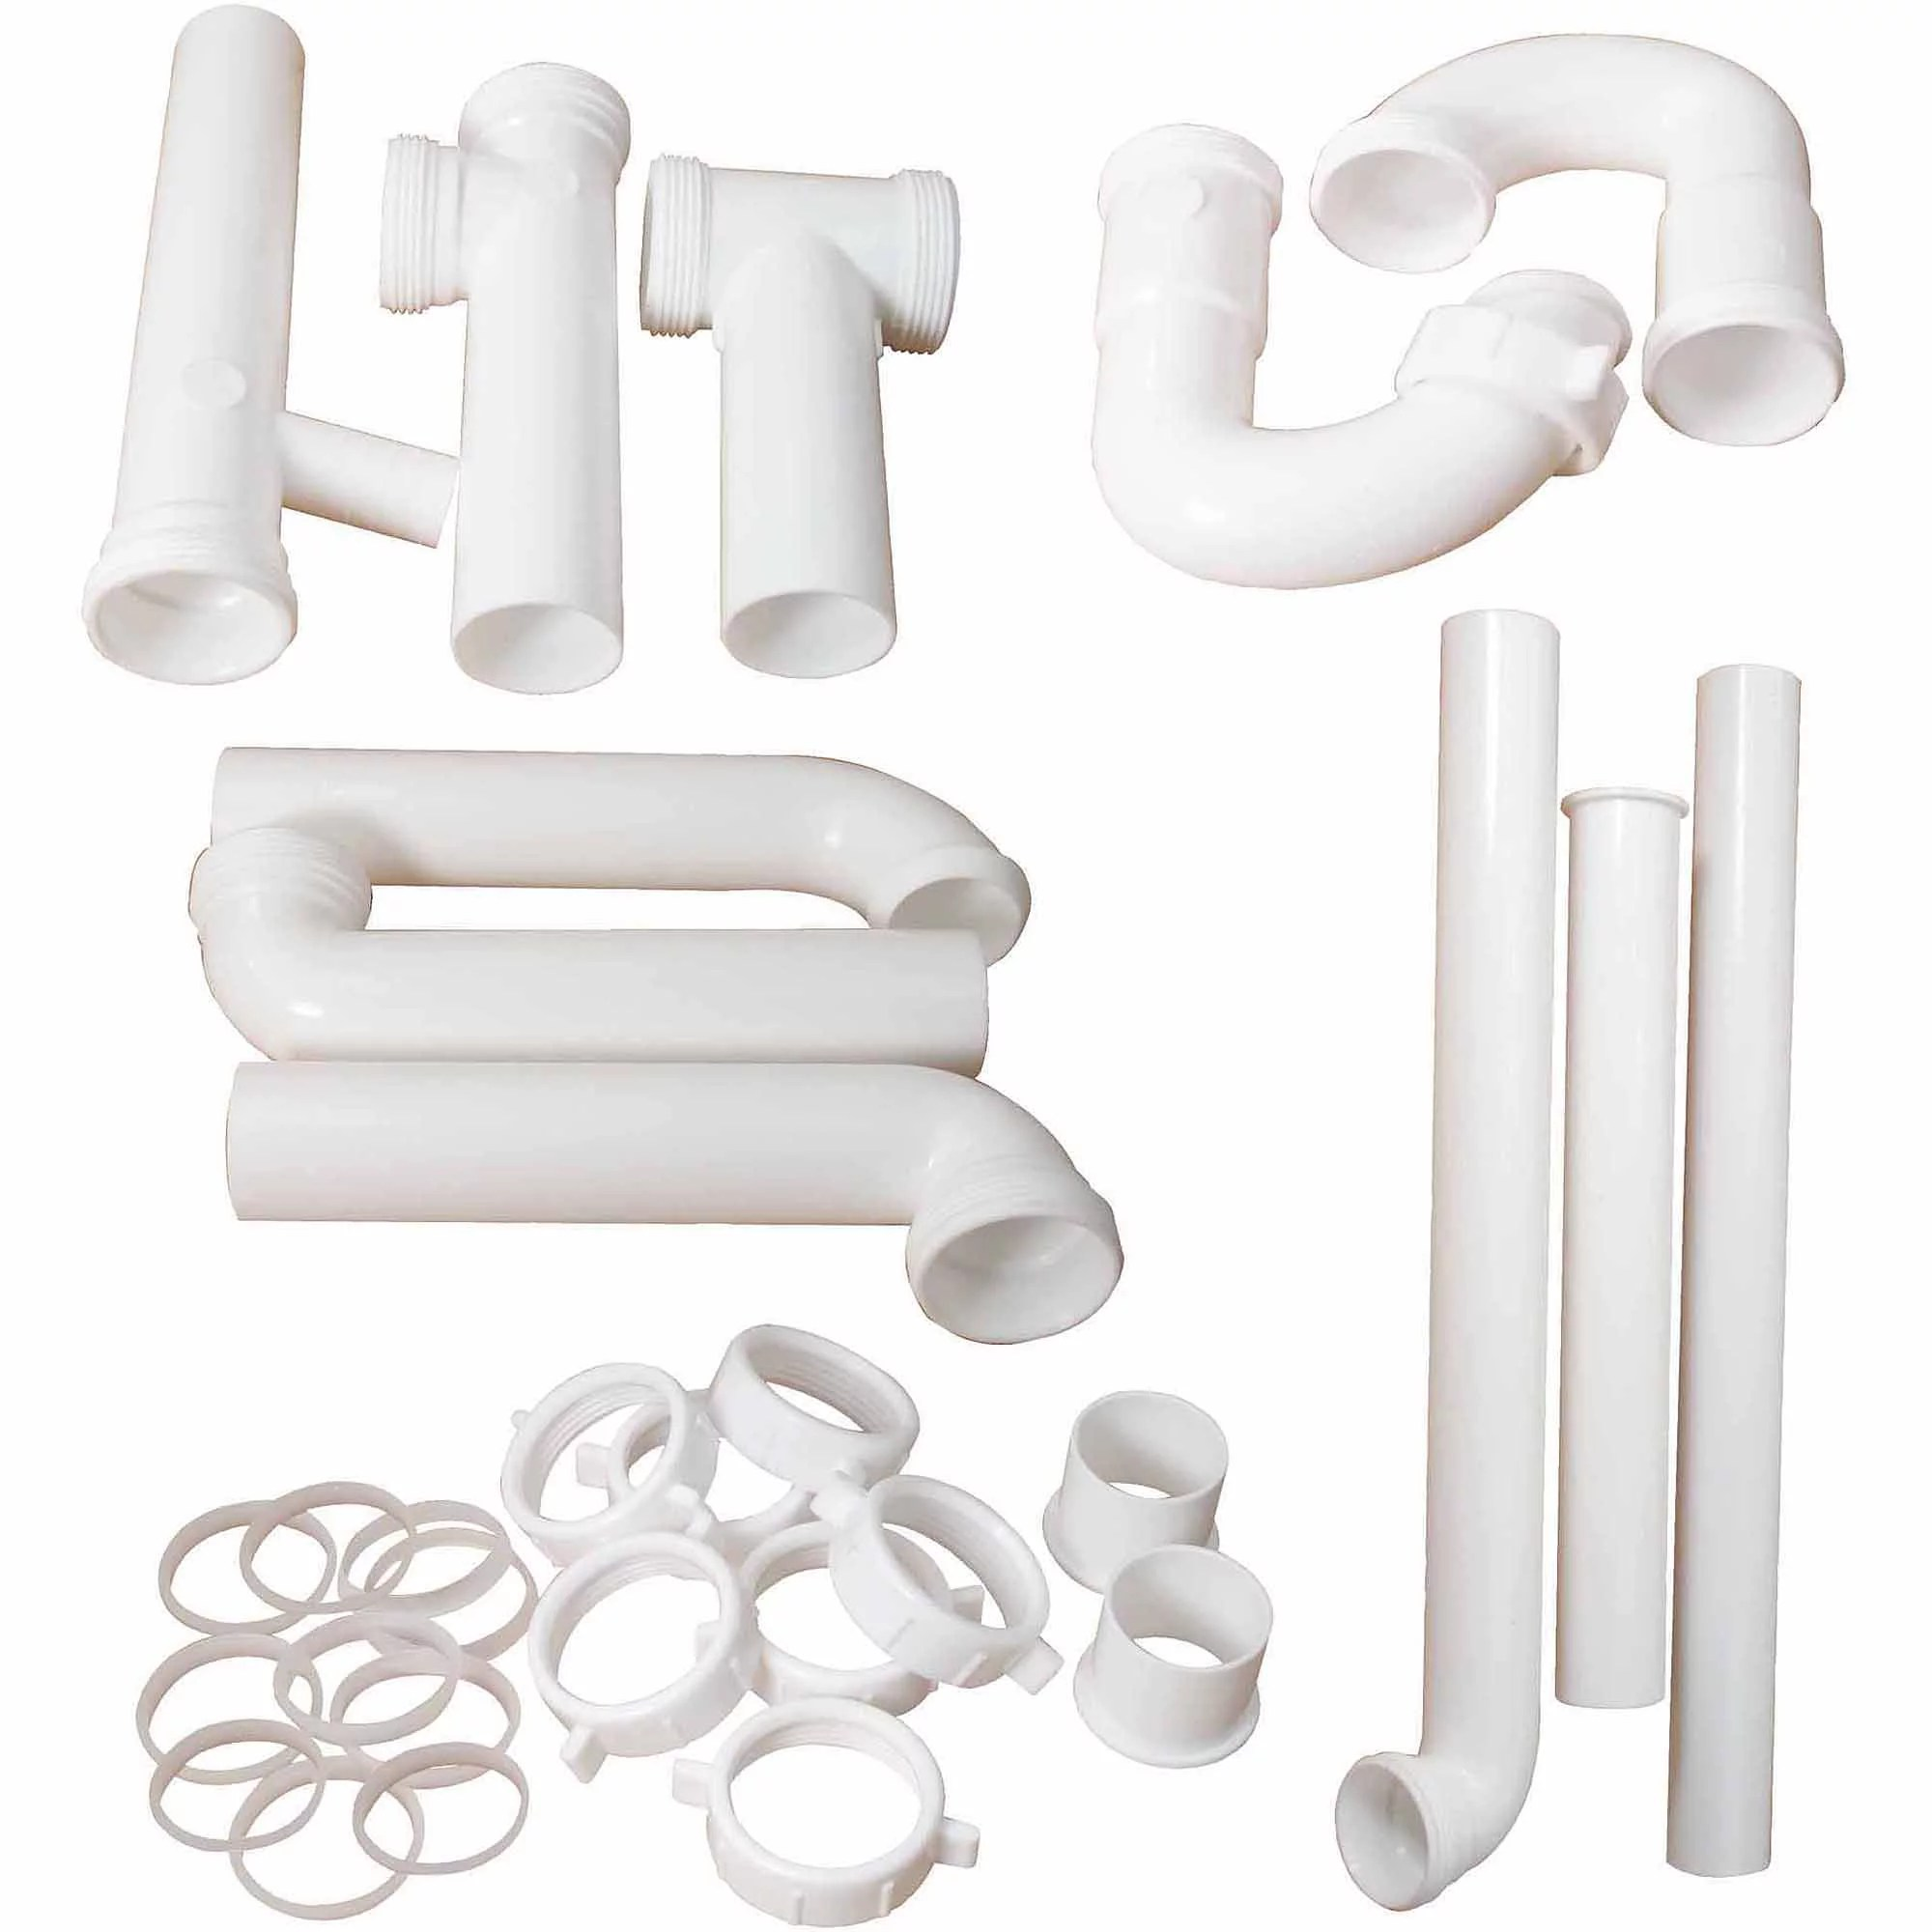 peerless cpvc universal kitchen lav trap kit with 1 1 4 in o d and 1 1 2 in o d drainage walmart com